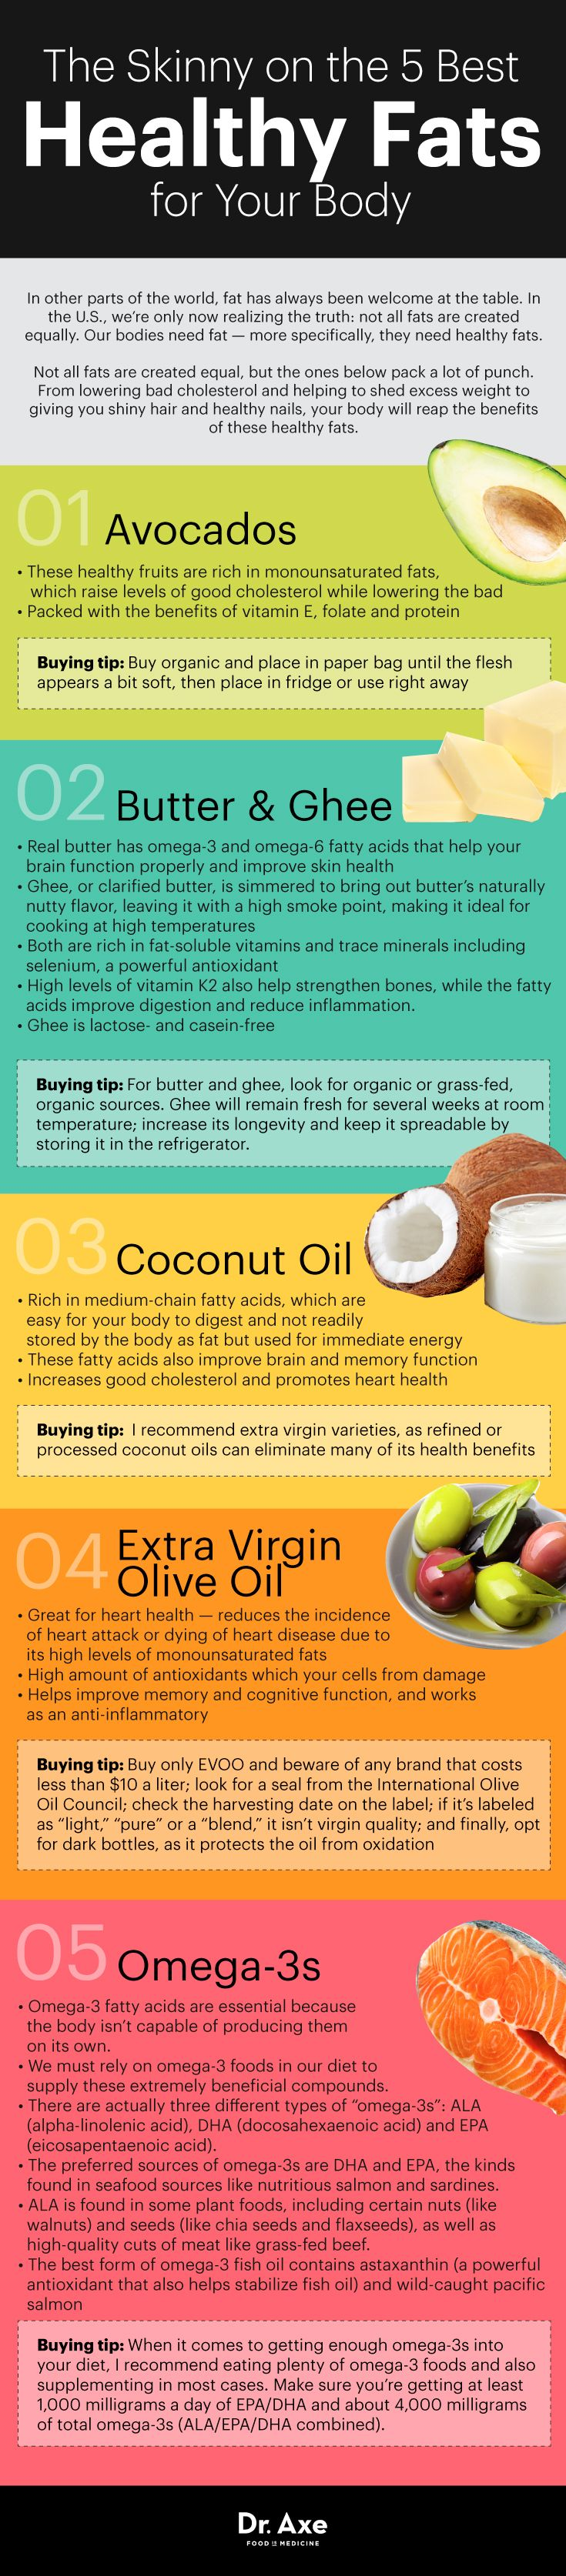 Guide to healthy fats infographic - Dr. Axe http://www.draxe.com #health #holistic #natural